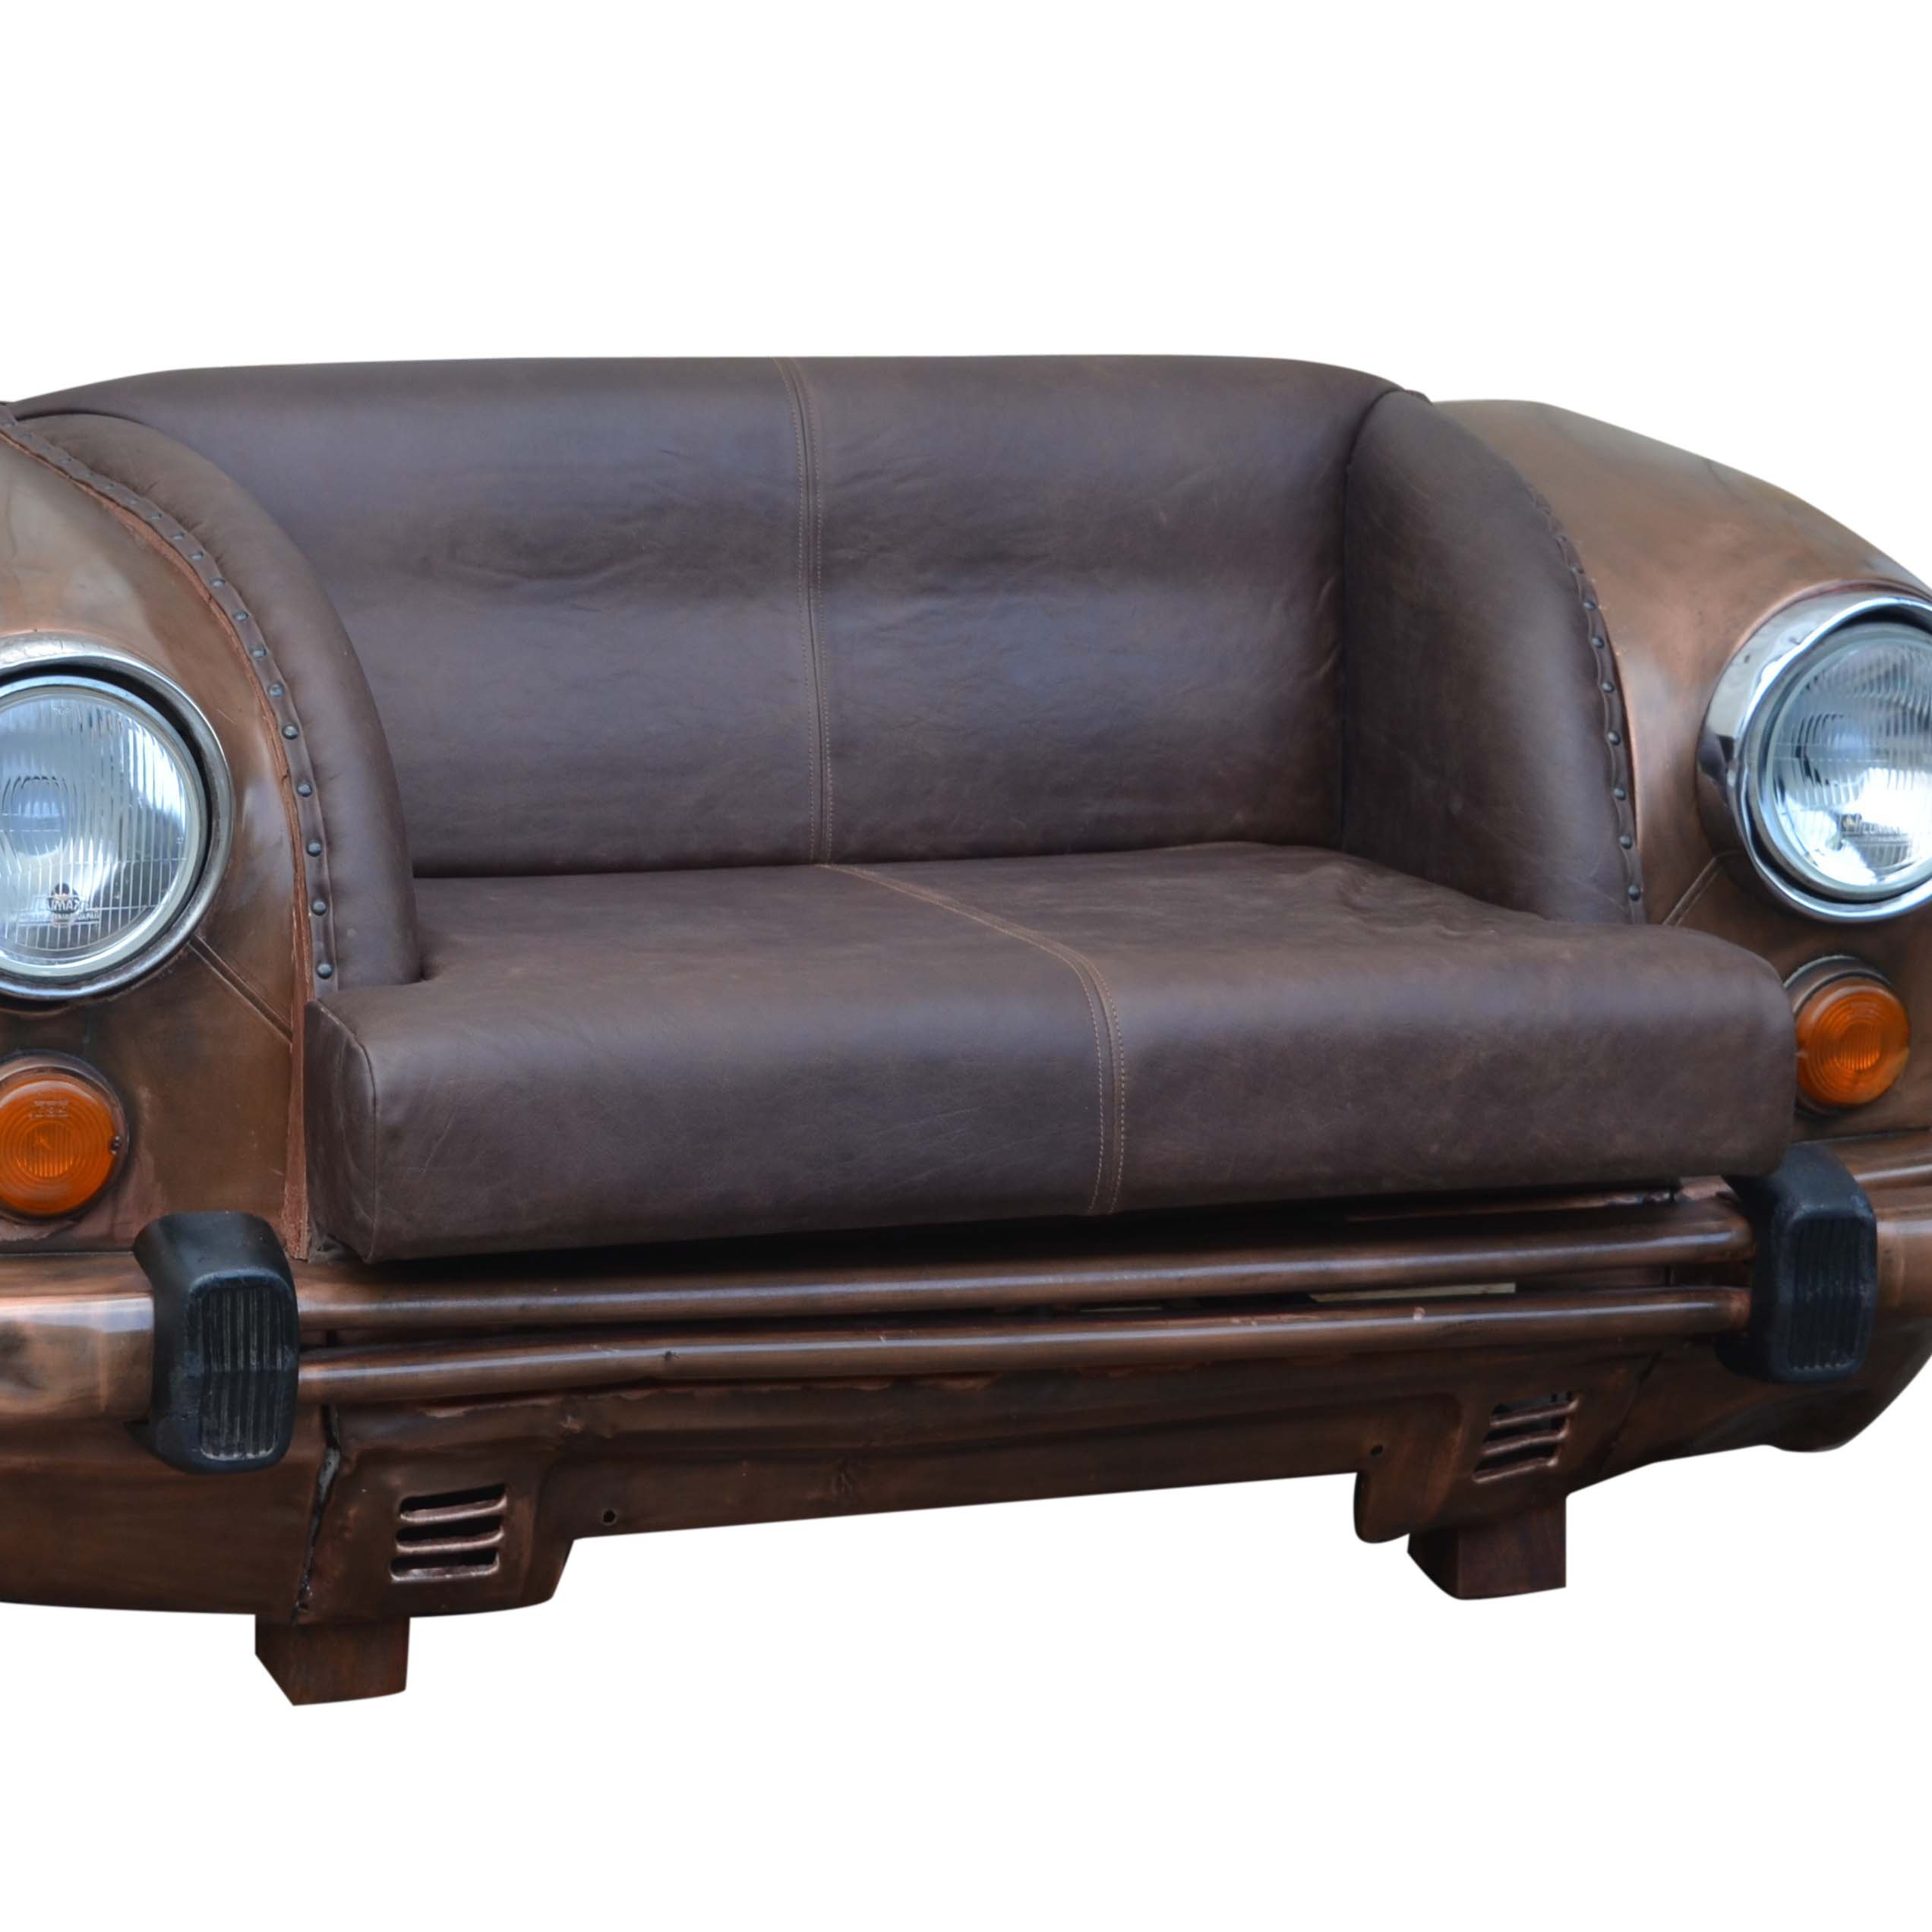 Car Sofa With Leather Seat And Round Headlights - Buy Car Shaped  Sofa,Leather 2 Seat Sofa,Miami Leather Sofa Product on Alibaba.com